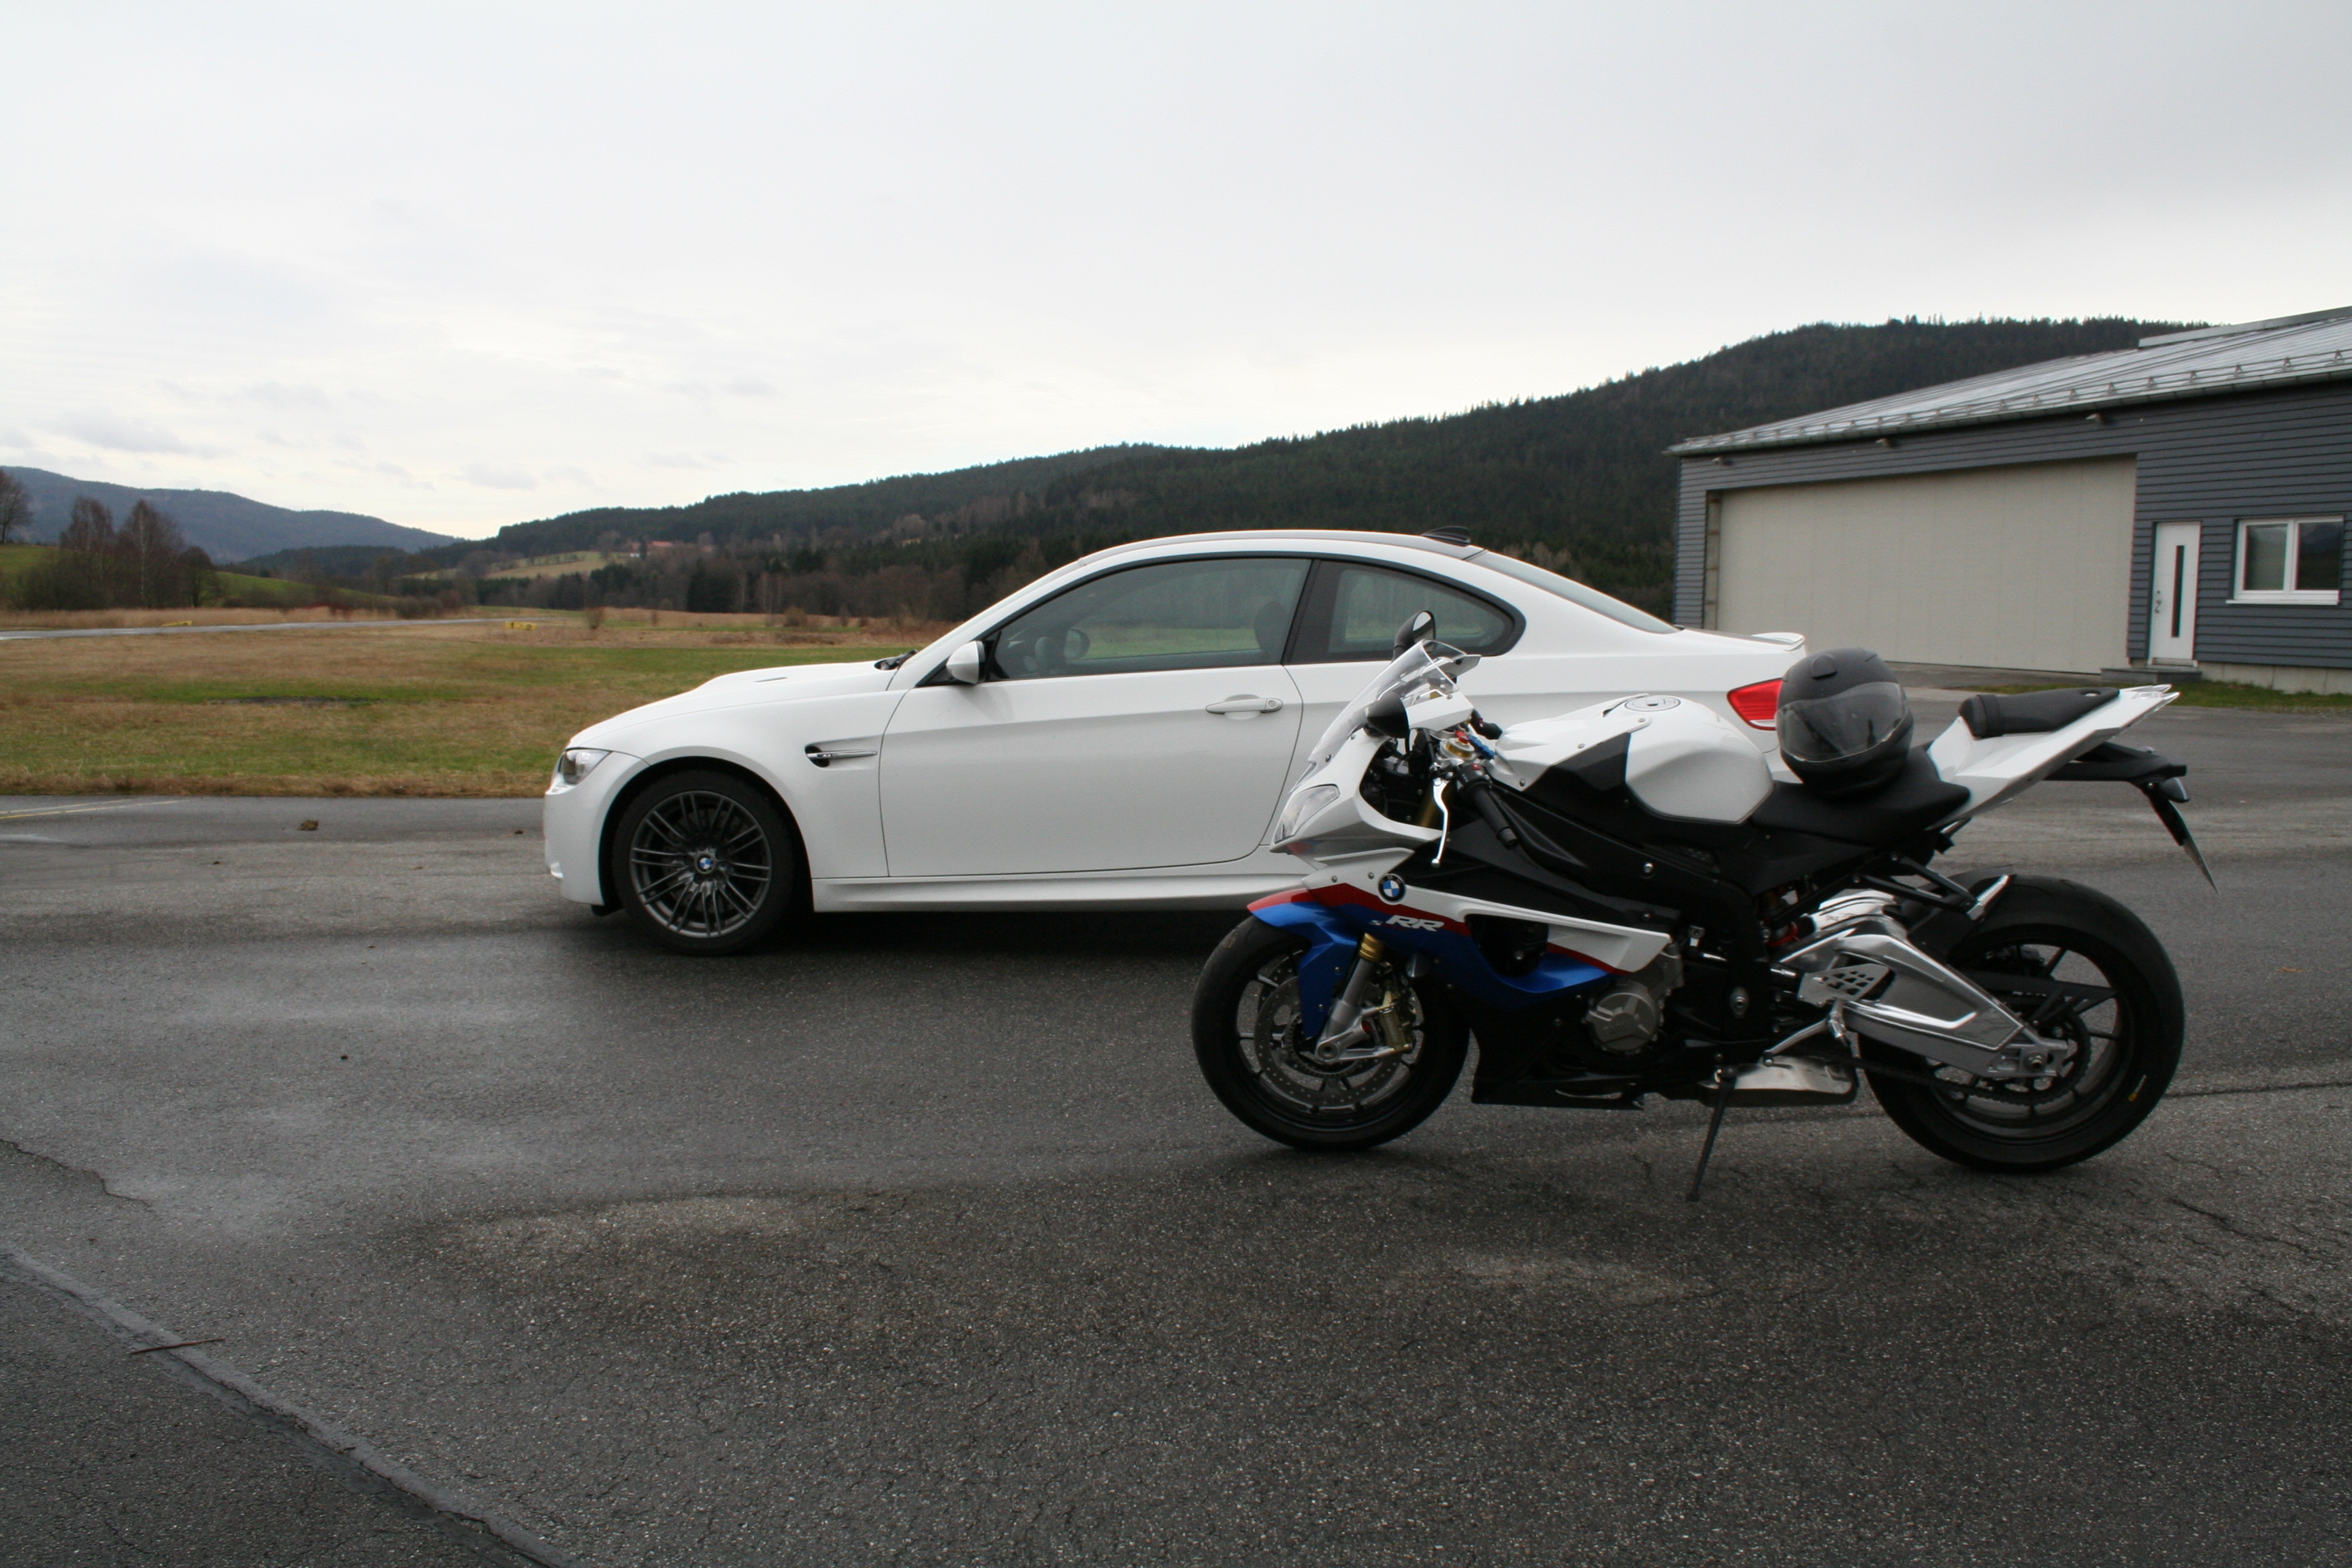 Bmw S1000rr Vs Bmw M3 Can The S1000rr Compete With 420bhp Of The Bmw M3 Motorcycle Accessory Hornig Parts For Your Bmw Motorrad